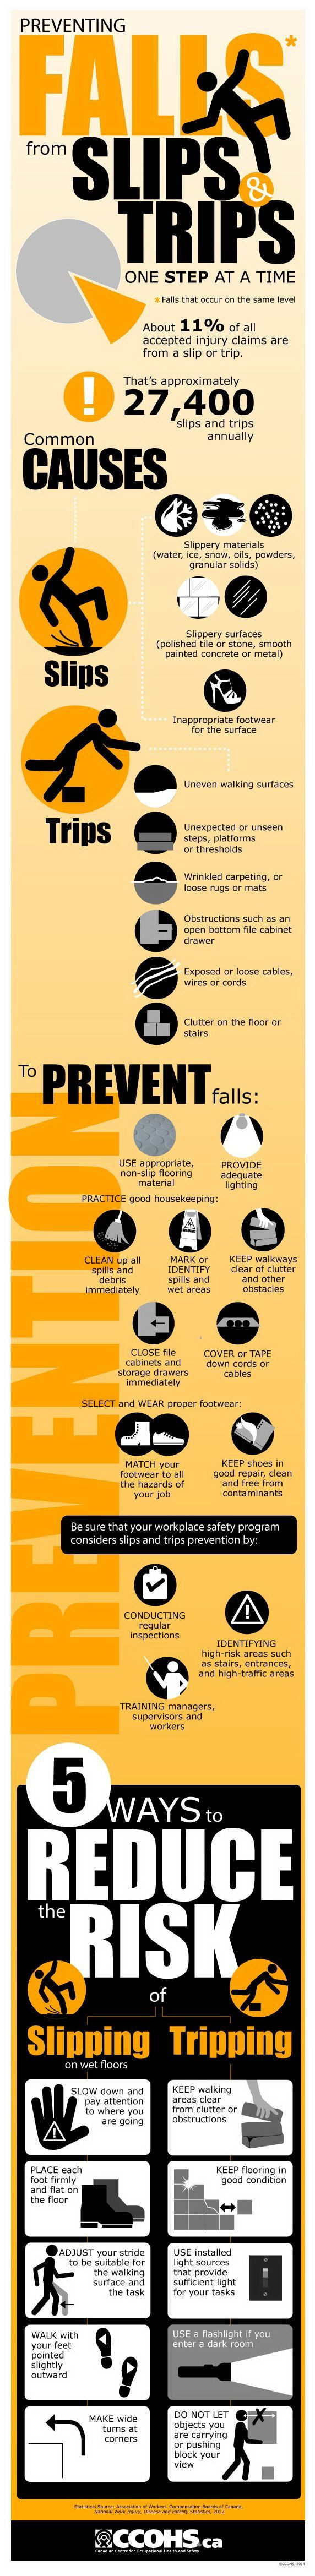 Slips & Trips Infographic Preventing Falls Health and